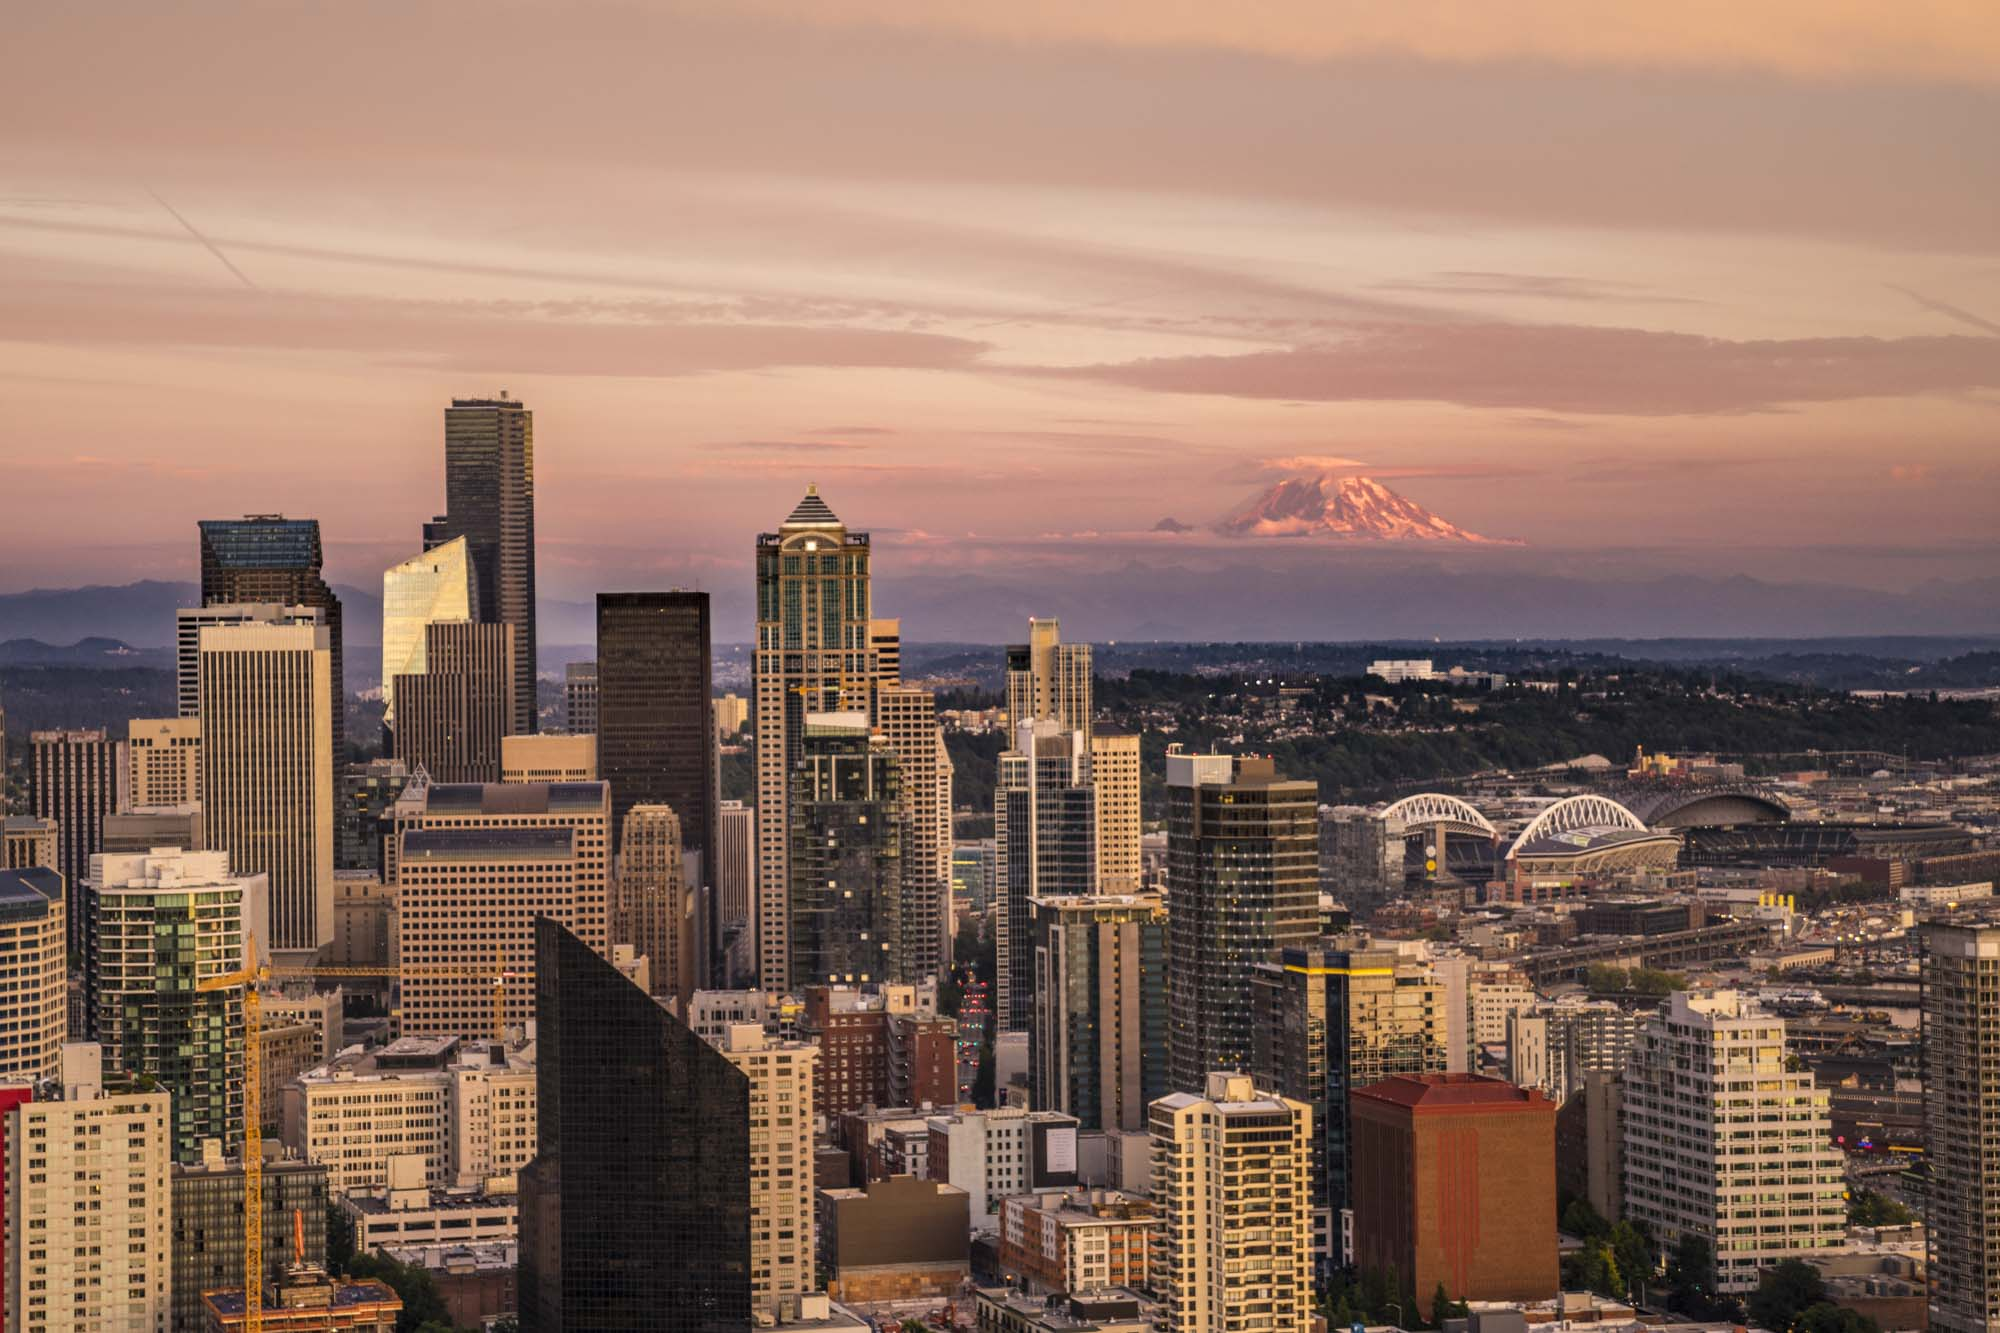 The Seattle skyline with Rainier in the distance.